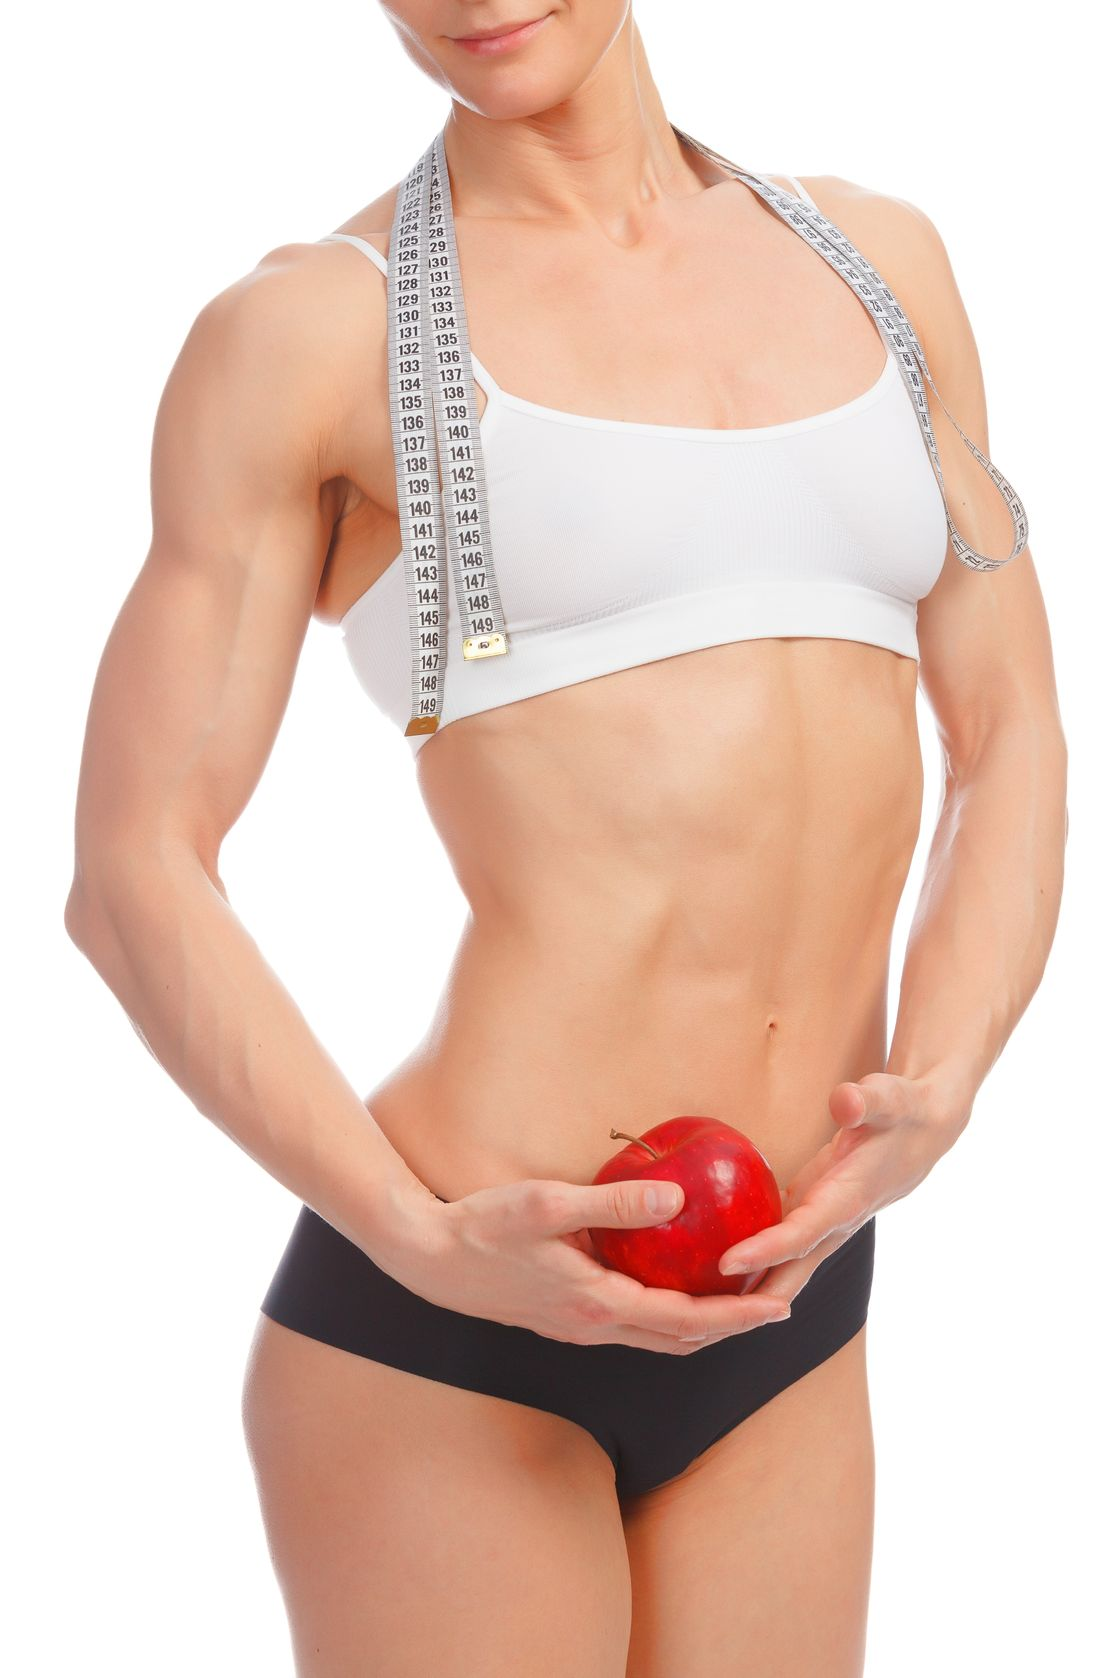 Flatten That Tummy with Quick and Easy Steps This Weekend